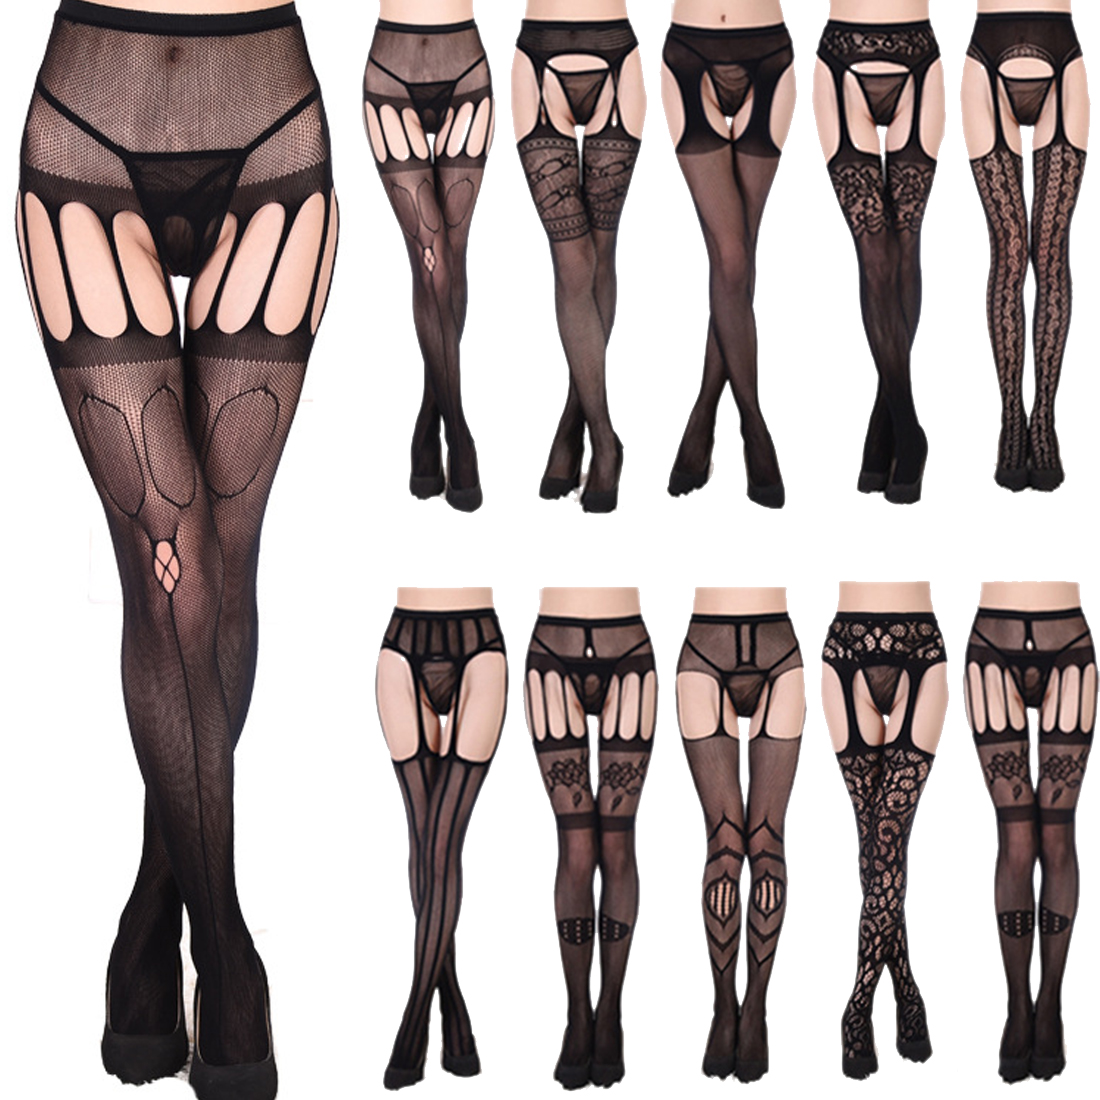 Lace Garter Funny Harajuku Transparent Black Fishnet Stockings Sheer Tight Embroidery Pantyhose Net Lace Stretchable Tight Slim